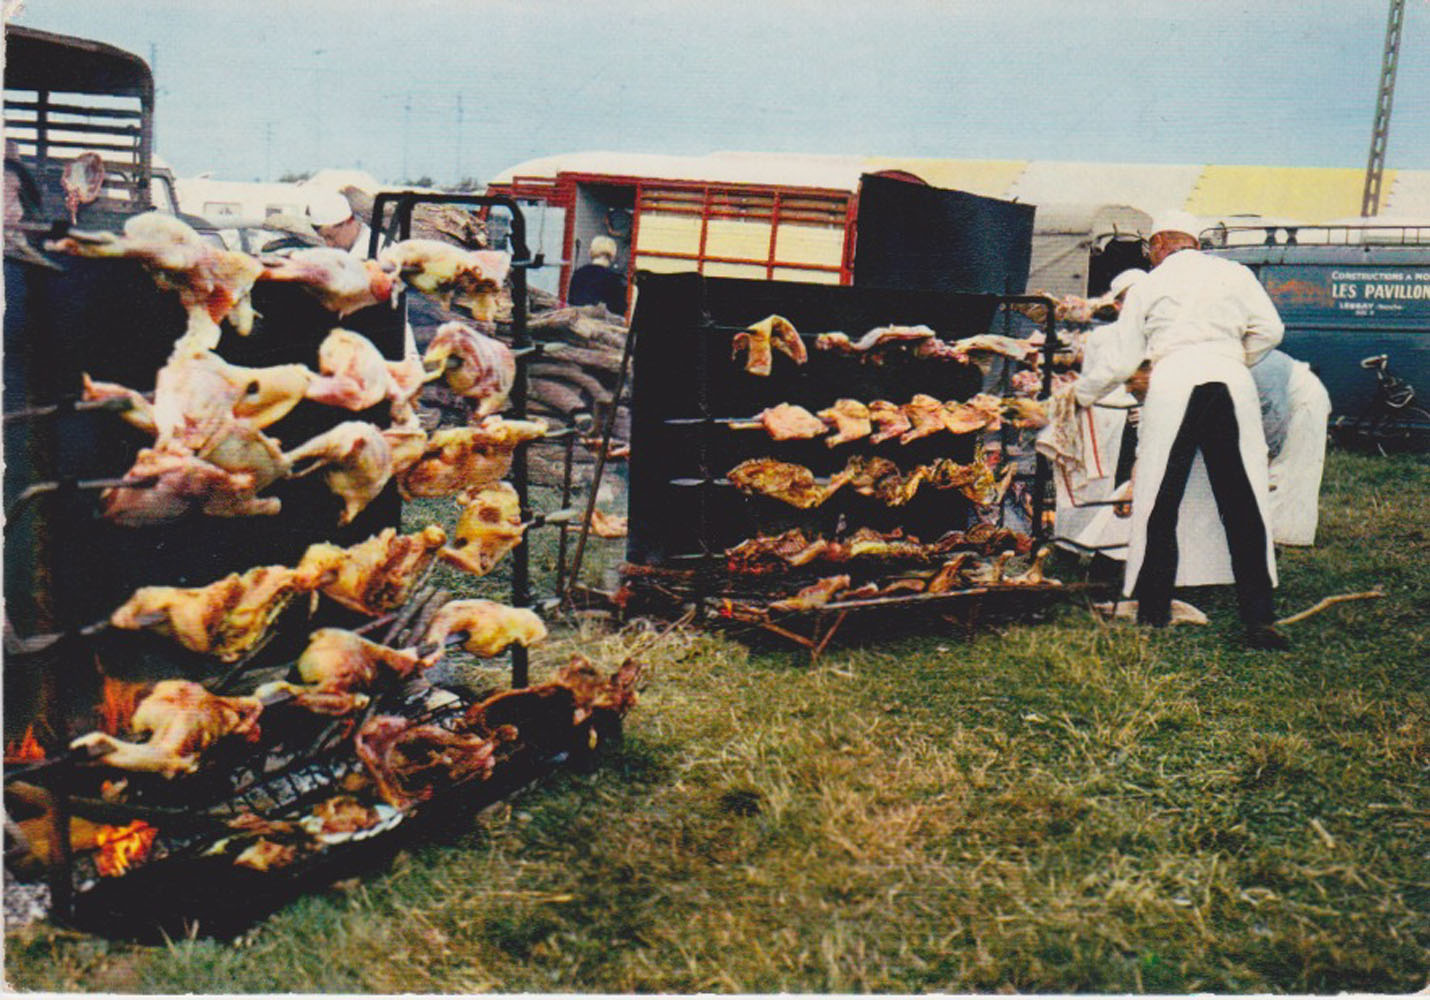 1968 St Martin Commerce Rotisserie © collection Jean Claude Ferret